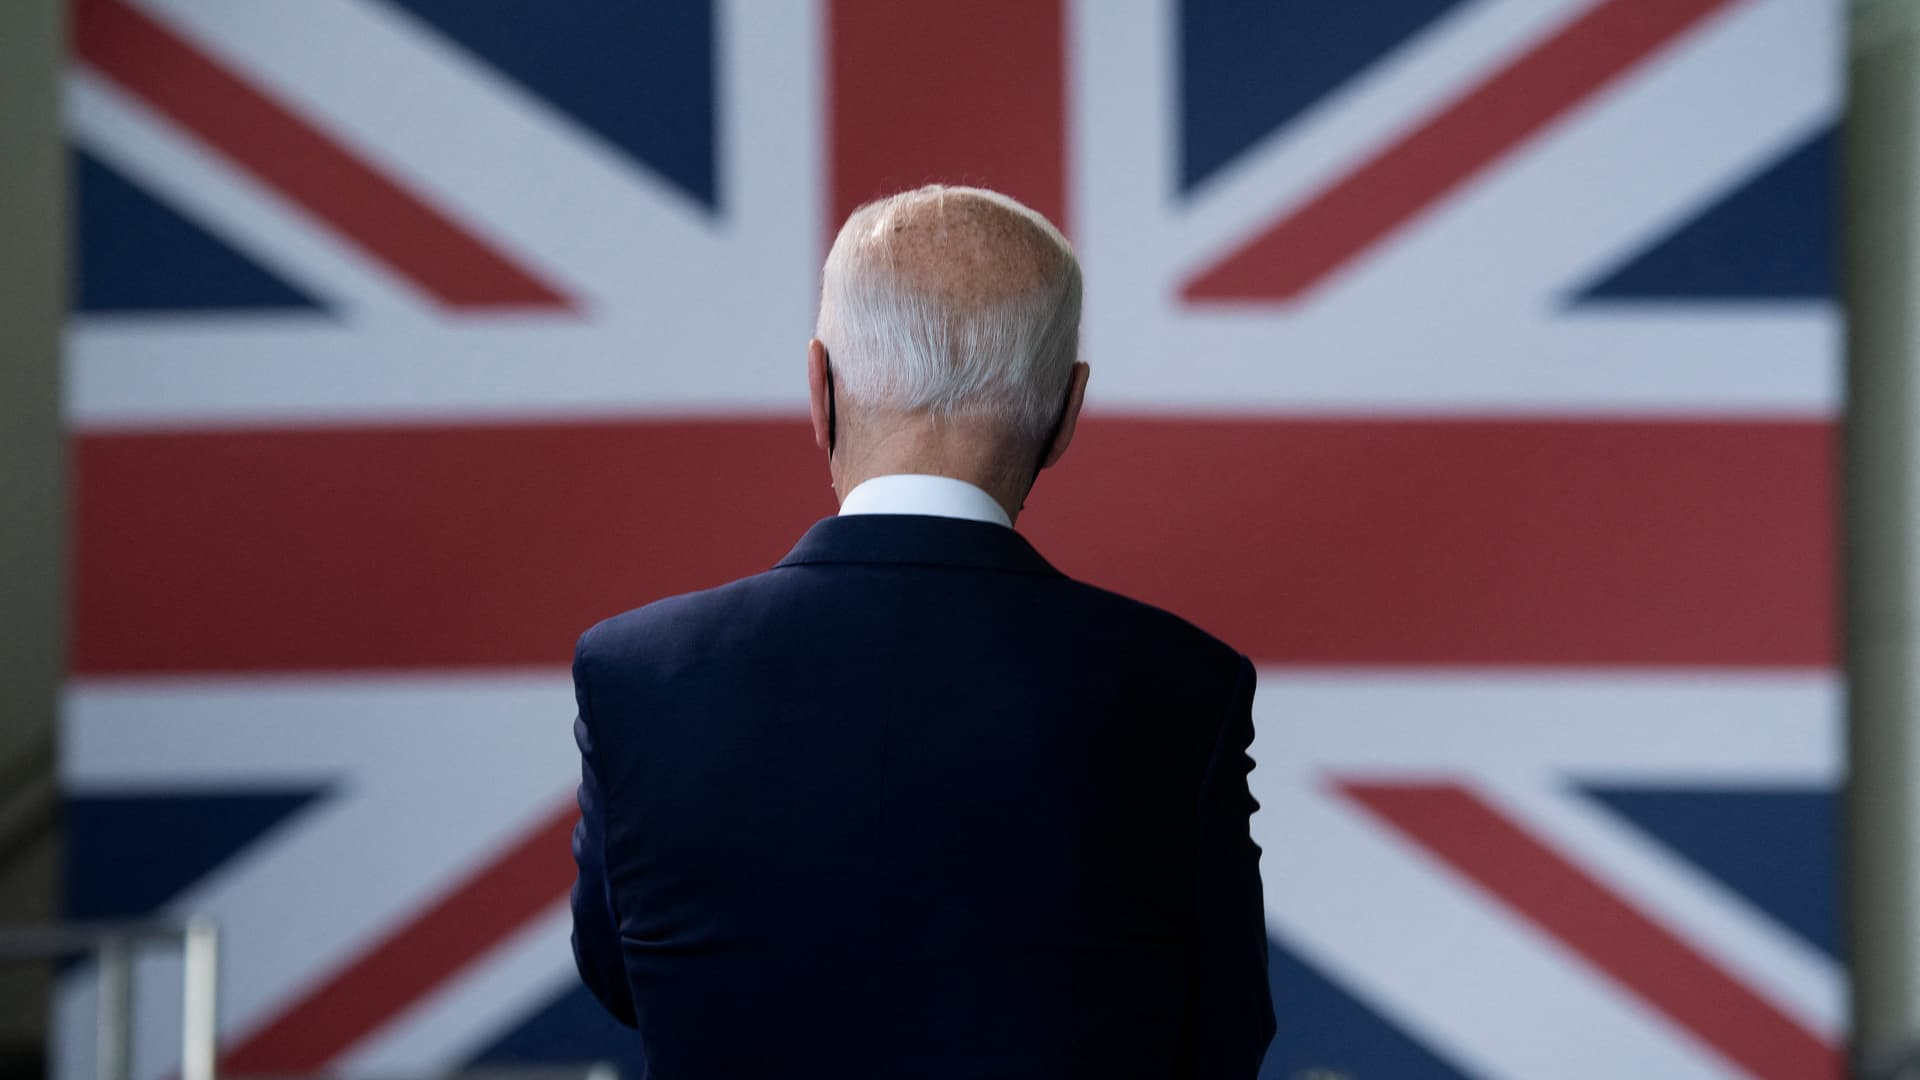 U.S. President Joe Biden prepares to address U.S. Air Force personnel and their families stationed at Royal Air Force Mildenhall, Suffolk, England on June 9, 2021, ahead of the three-day G-7 Summit.